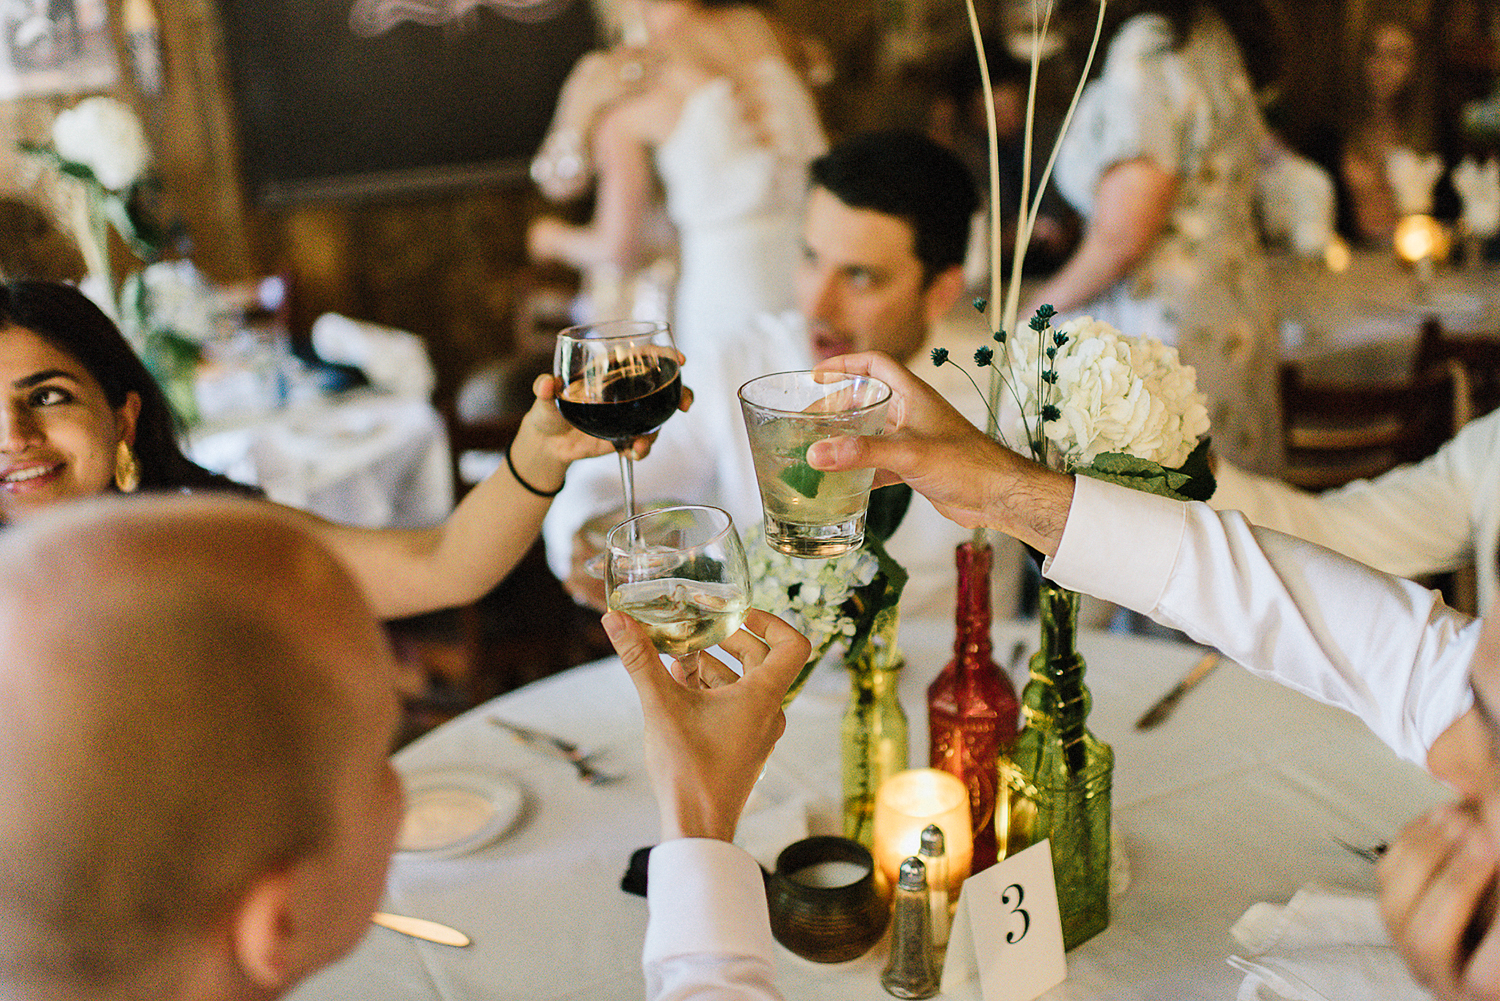 Country-Side-Wedding-Reception-at-private-Inn-restaurant-Vintage-Bride-and-Groom-Toronto-Wedding-Photographers-Venue-Vintage-Bar-guest-cheers.jpg